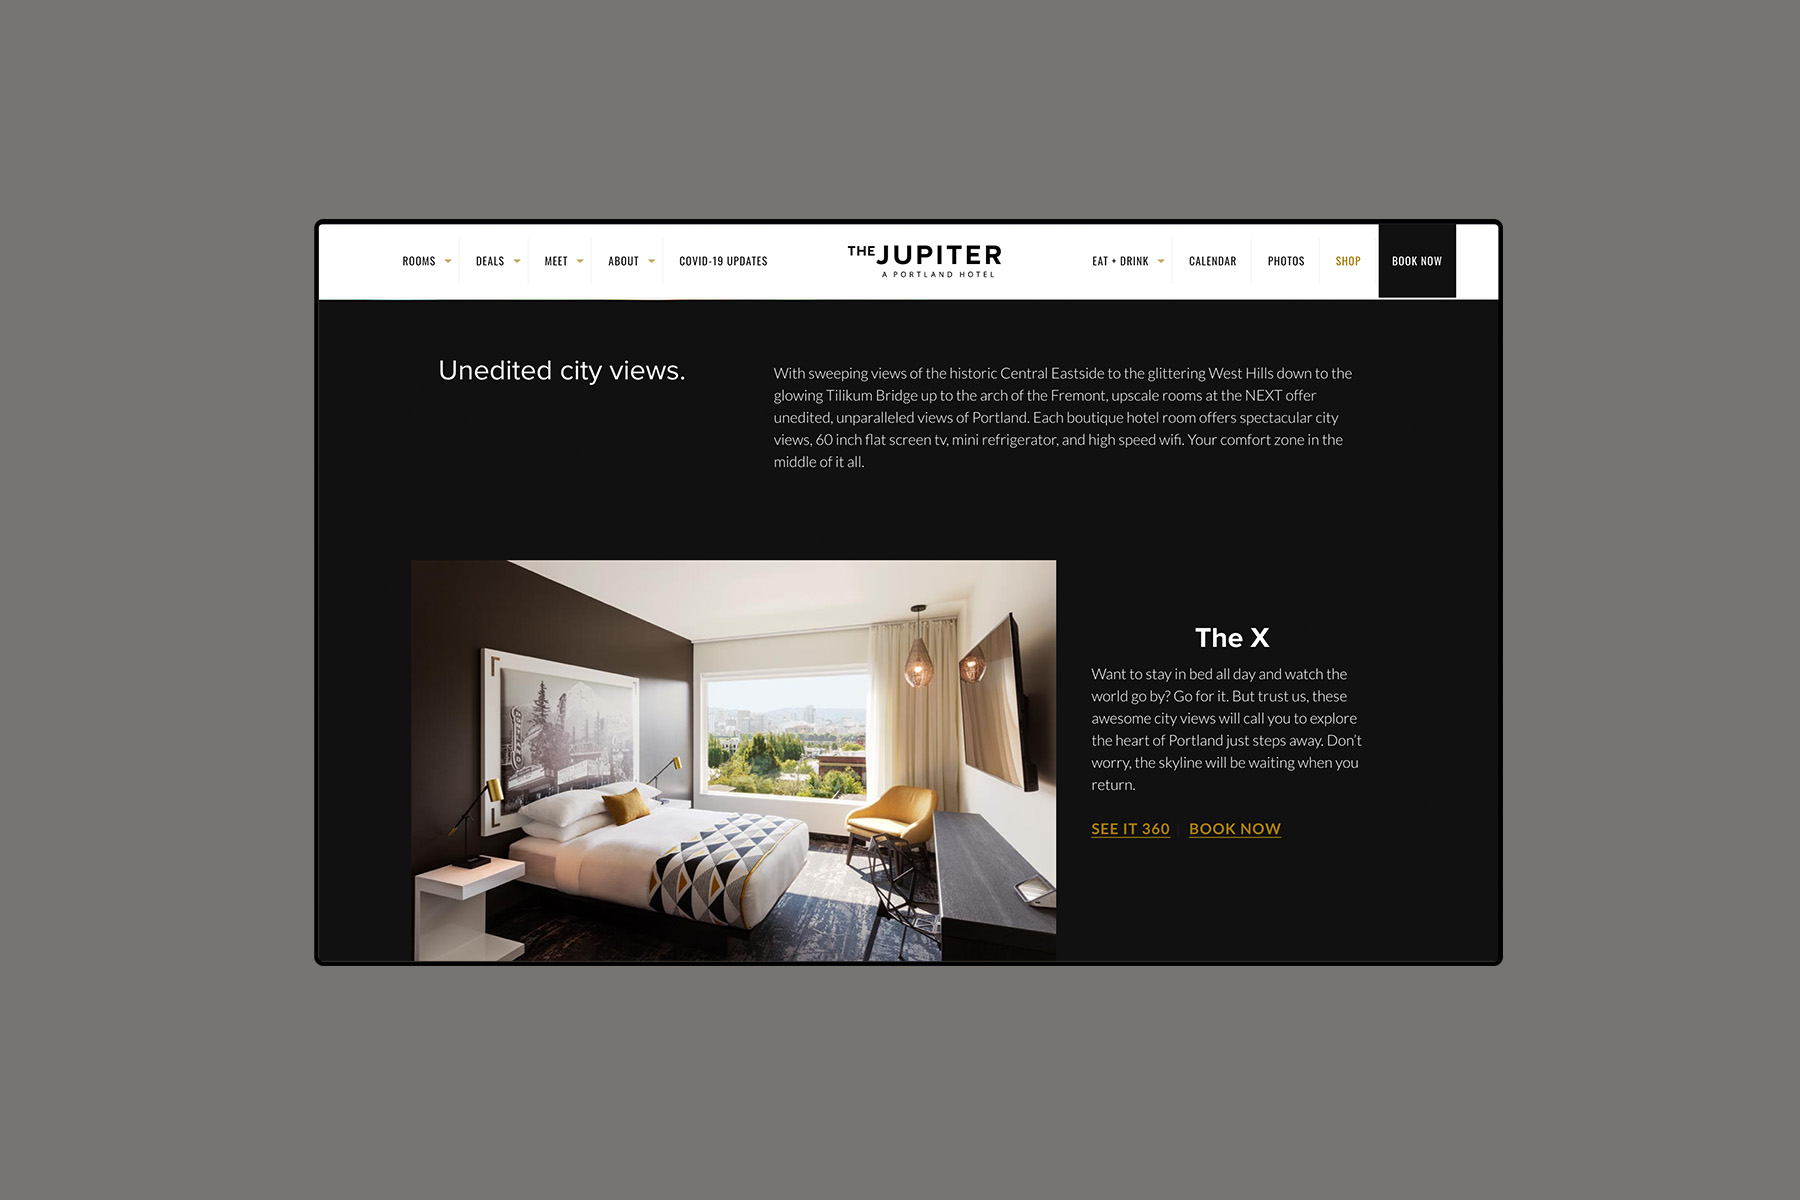 Web design for the jupiter next rooms page